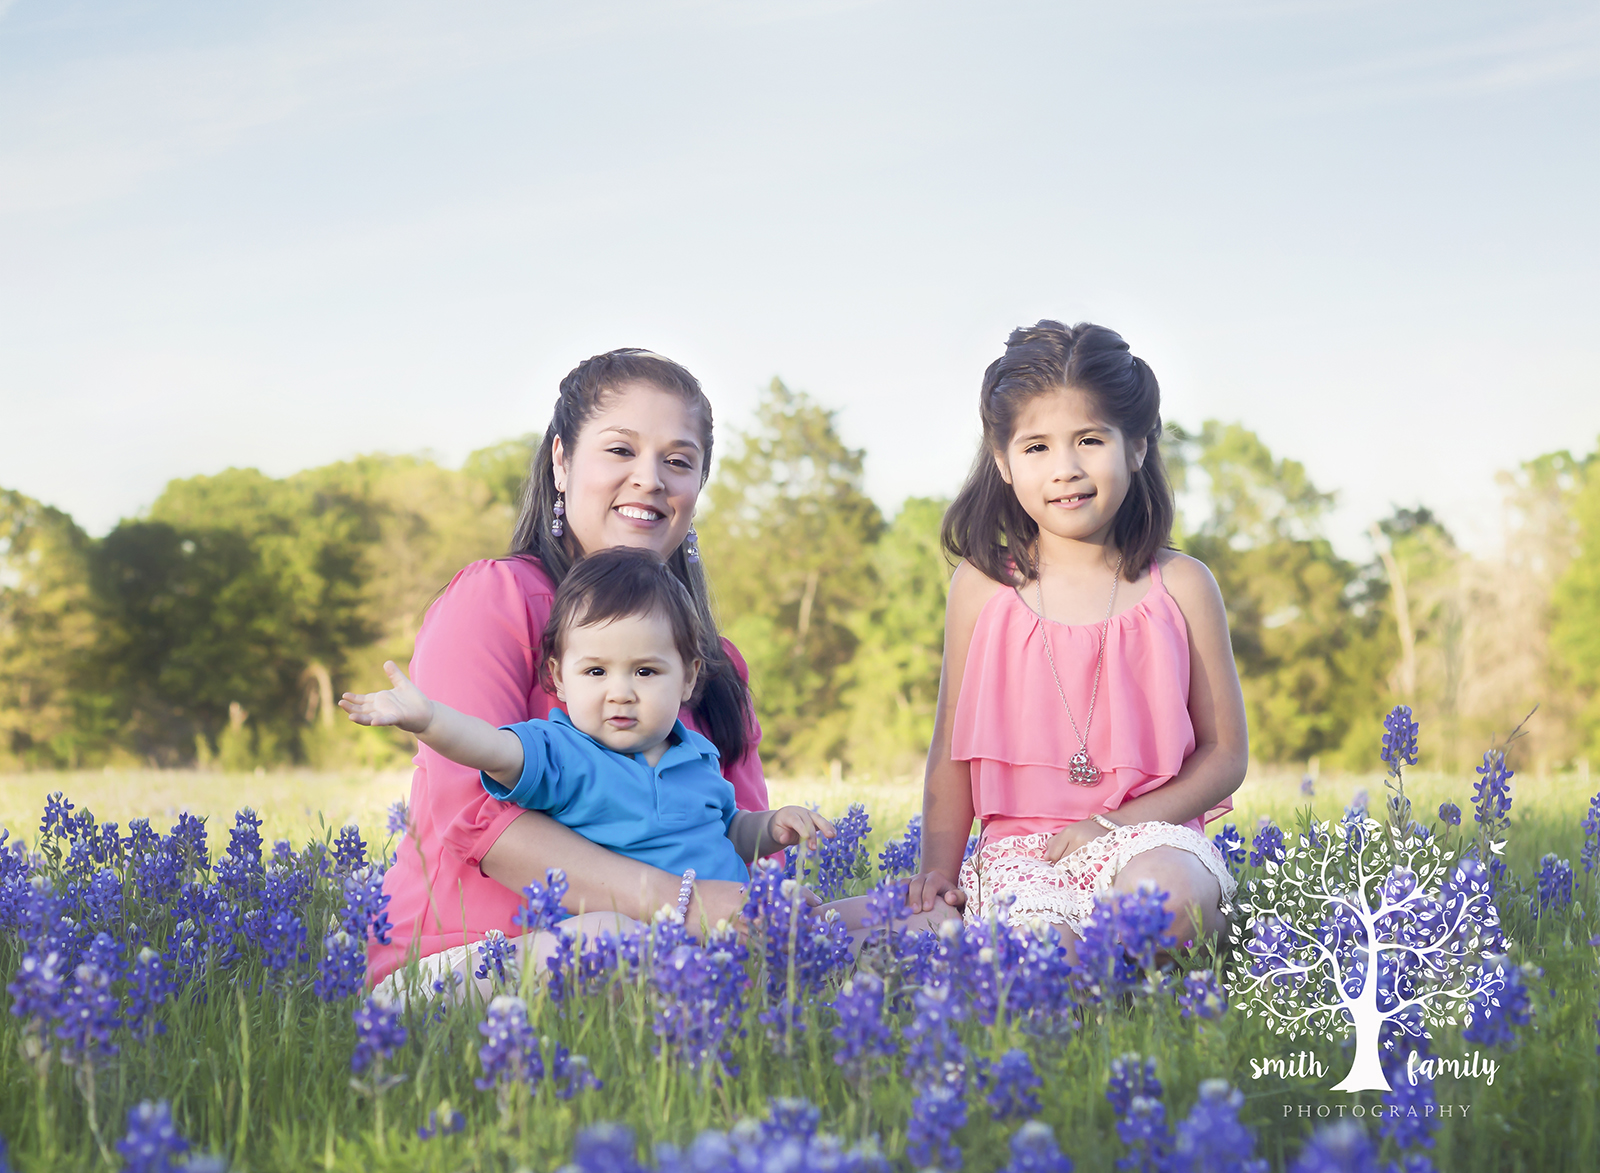 limestone_county_bluebonnet_smith_family_photography